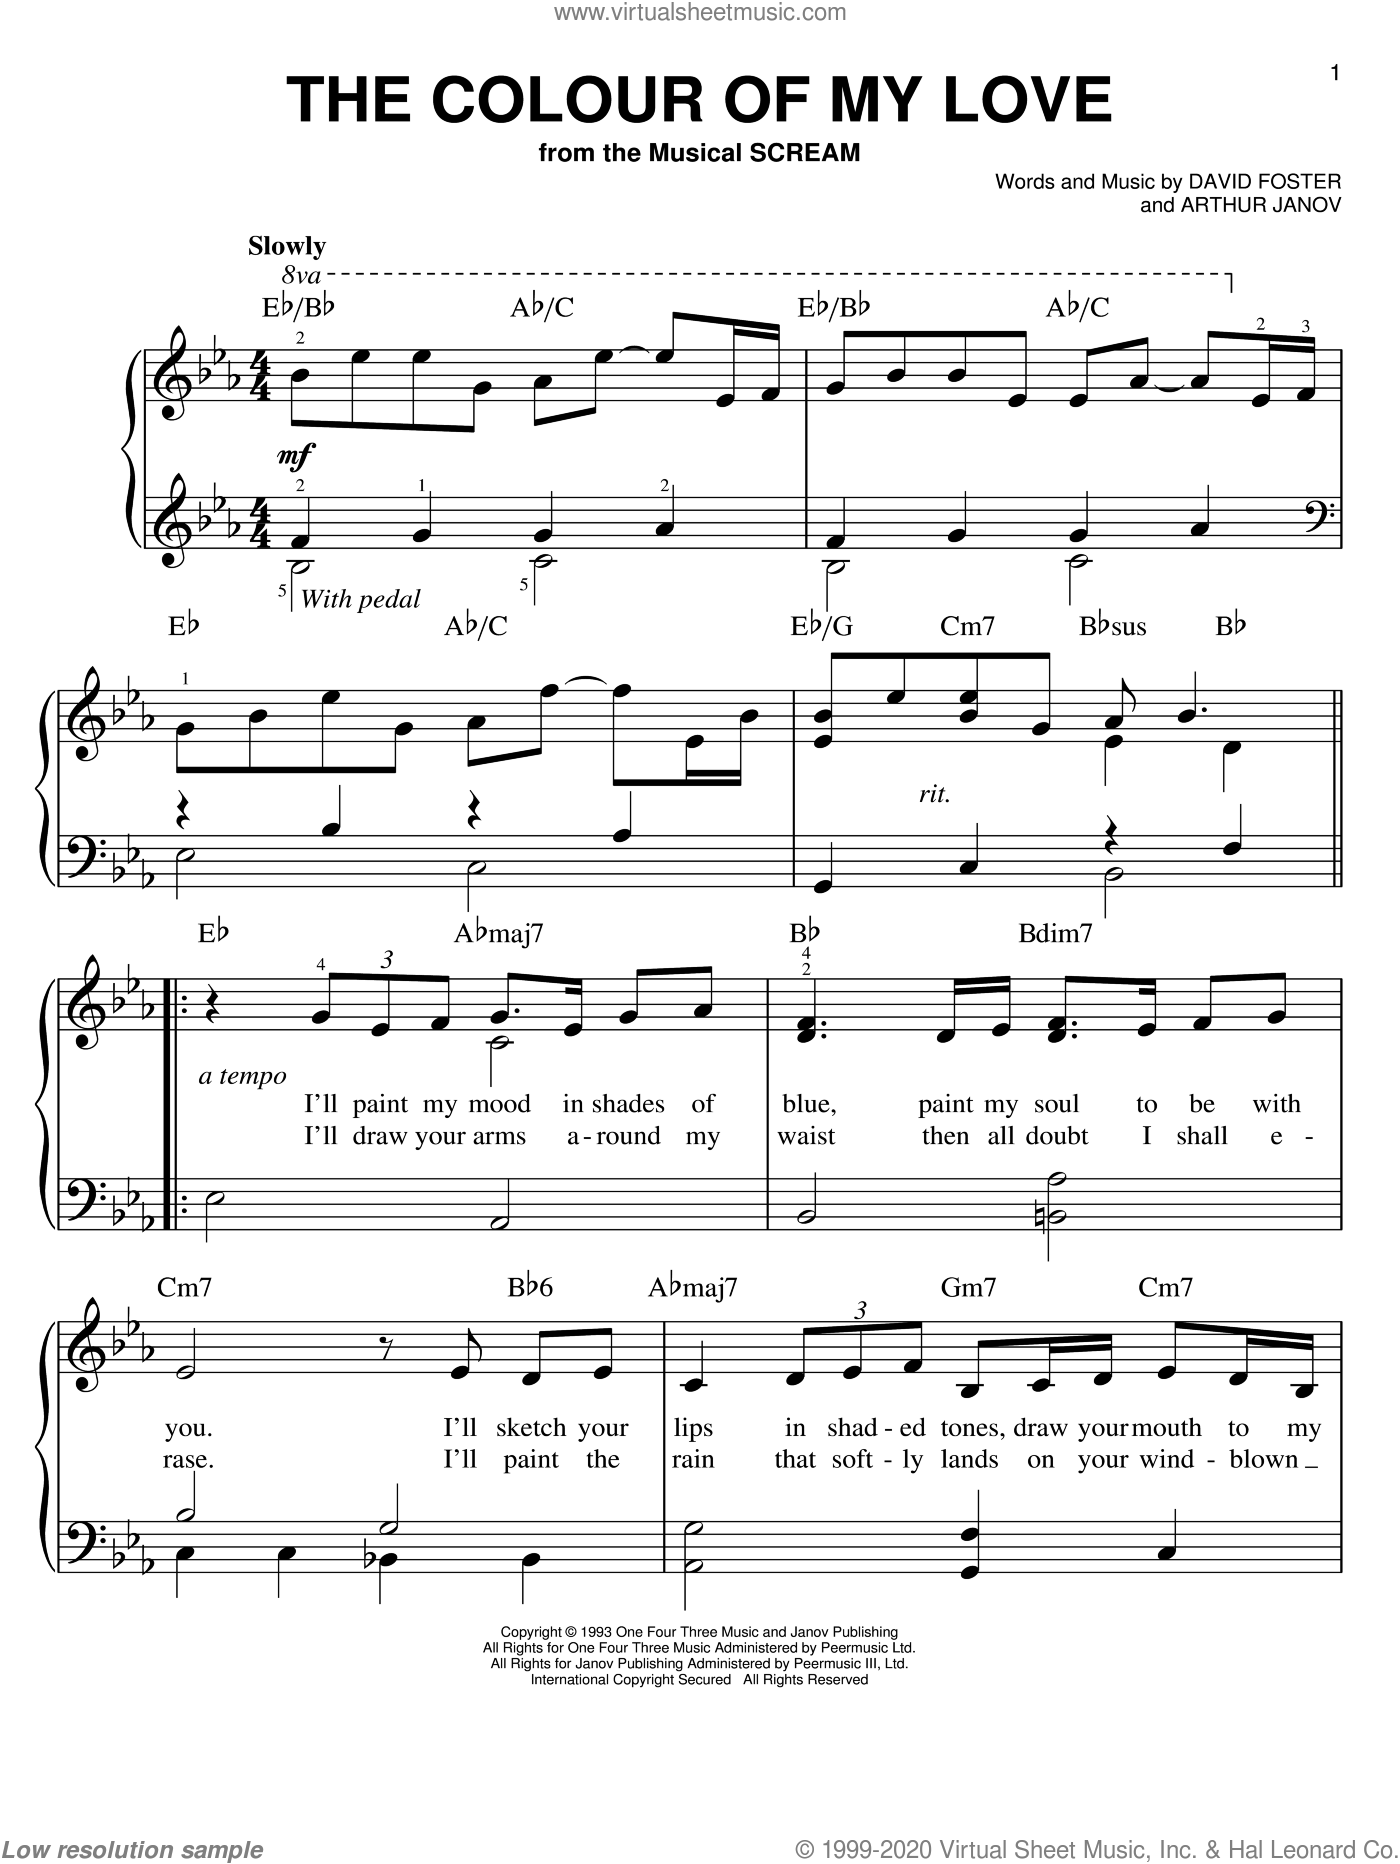 The Colour Of My Love sheet music for piano solo (chords) by Arthur Janov